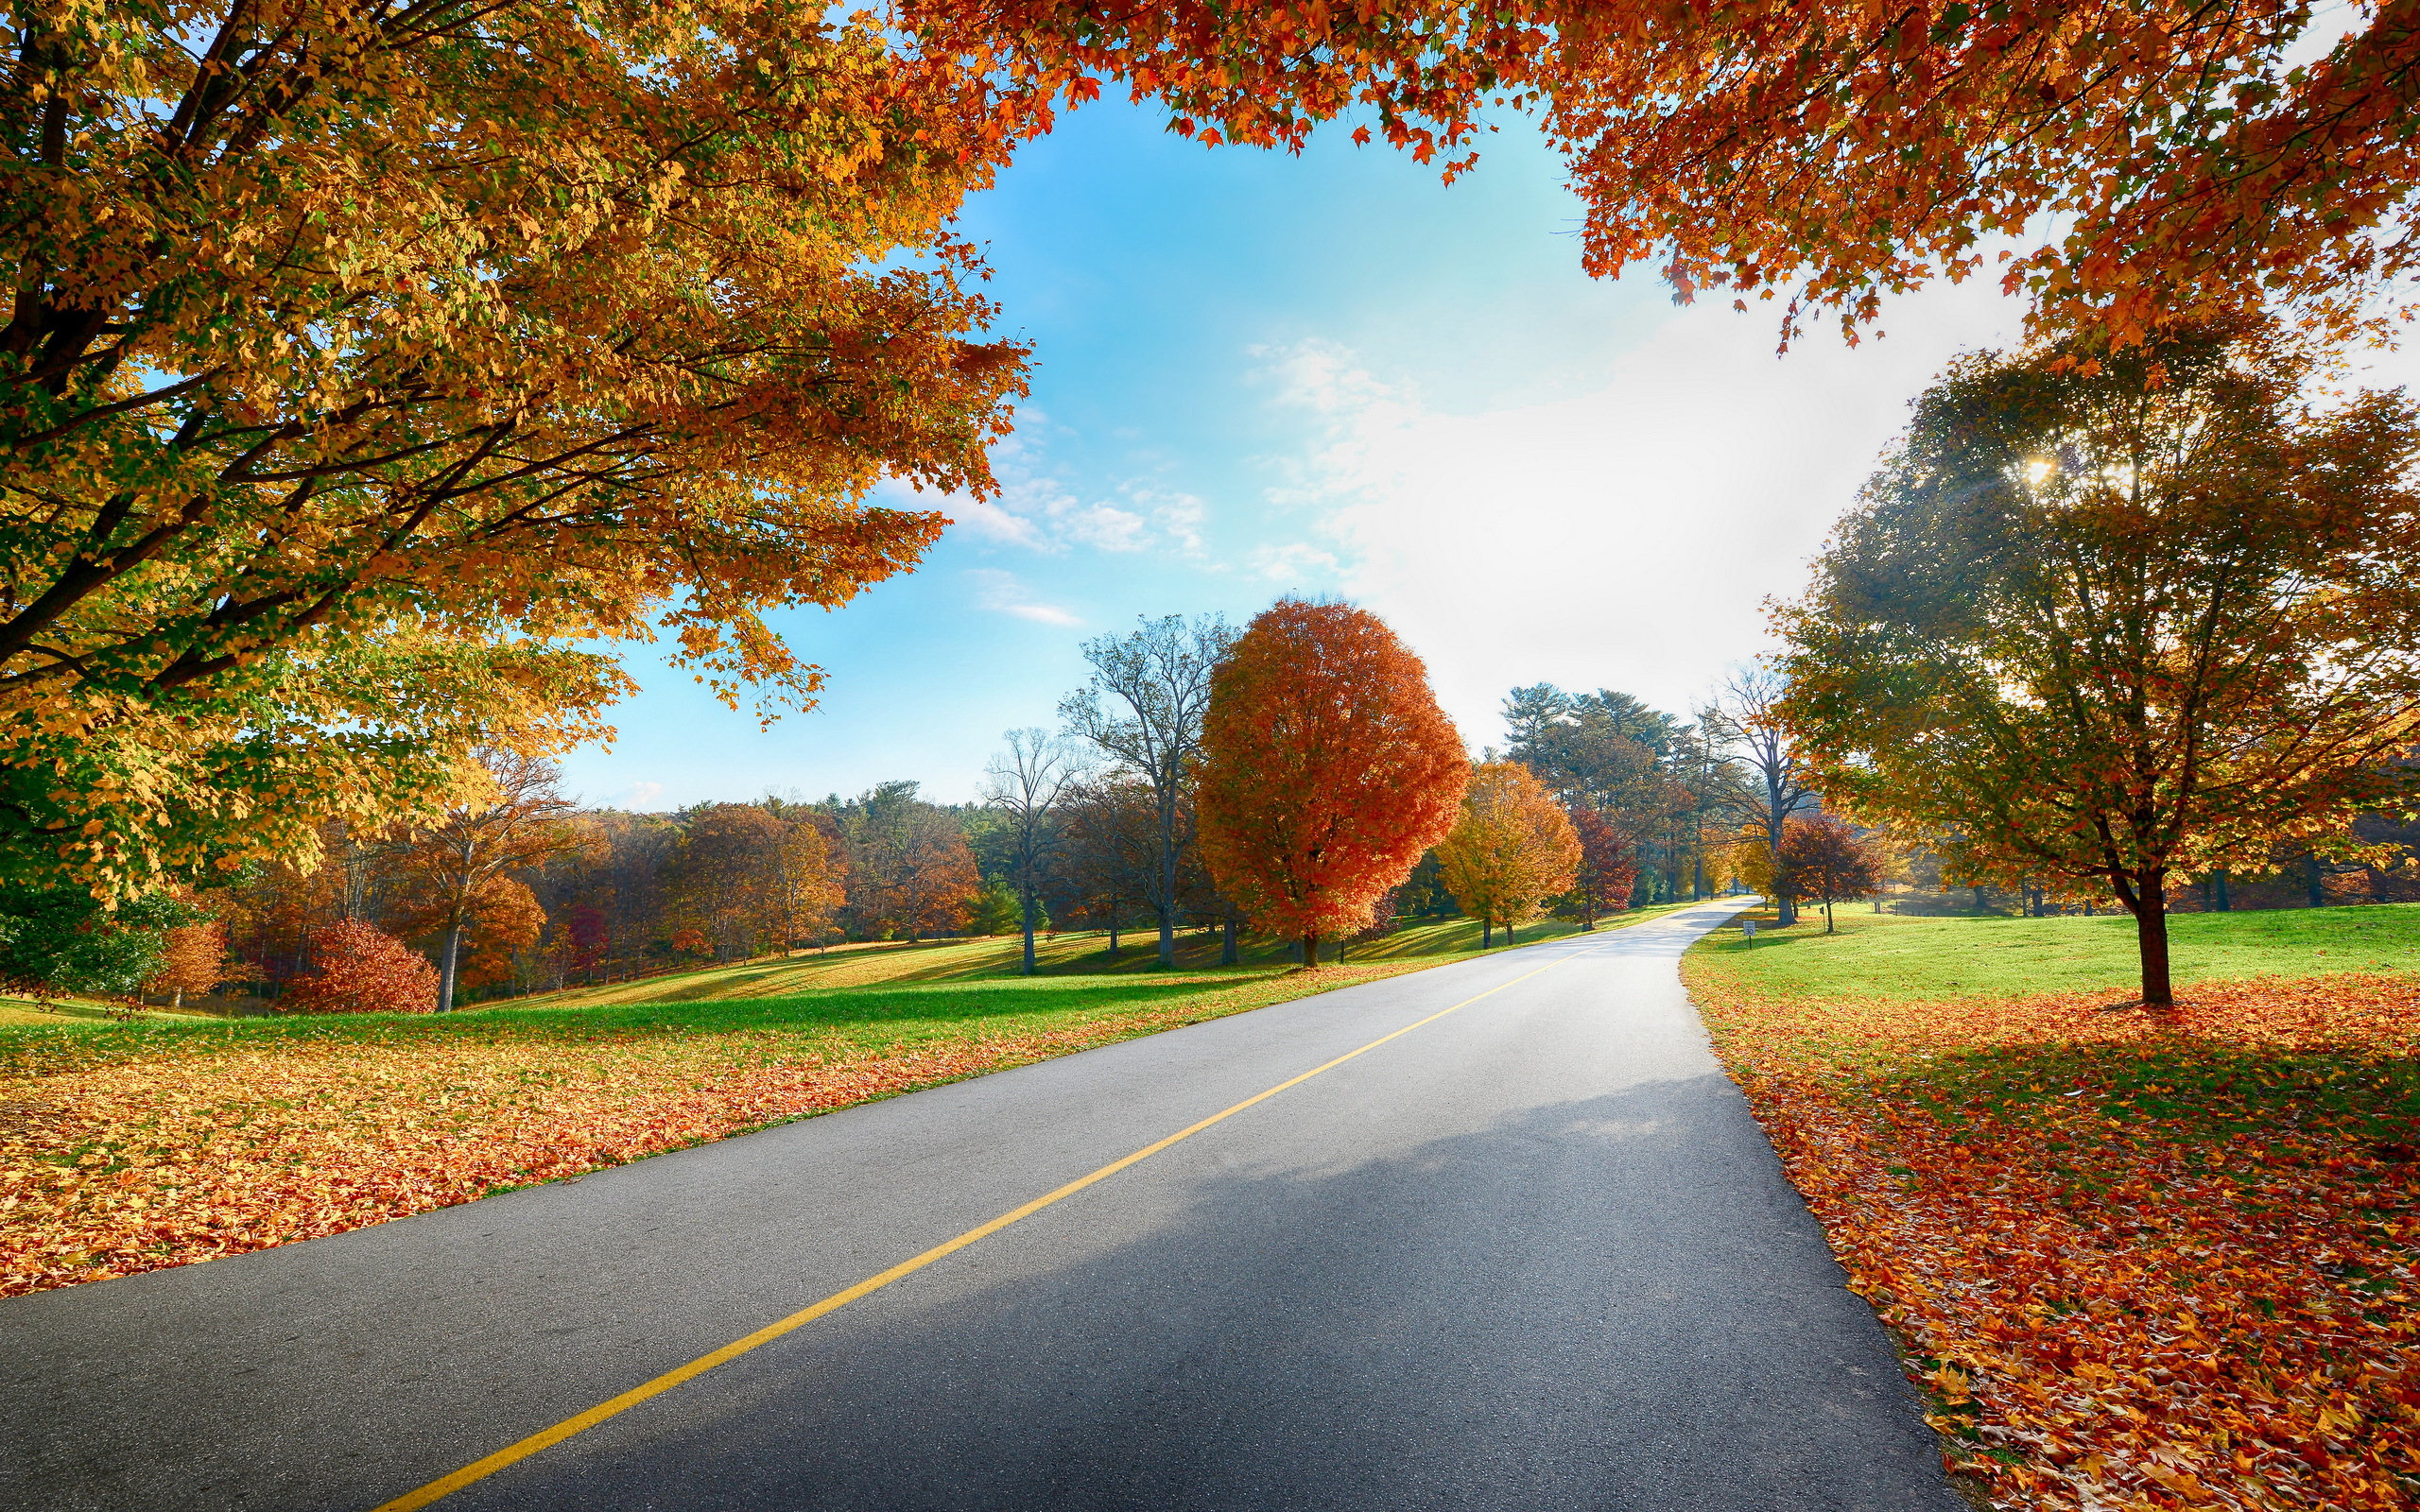 2560x1600 px : Autumn Wallpapers